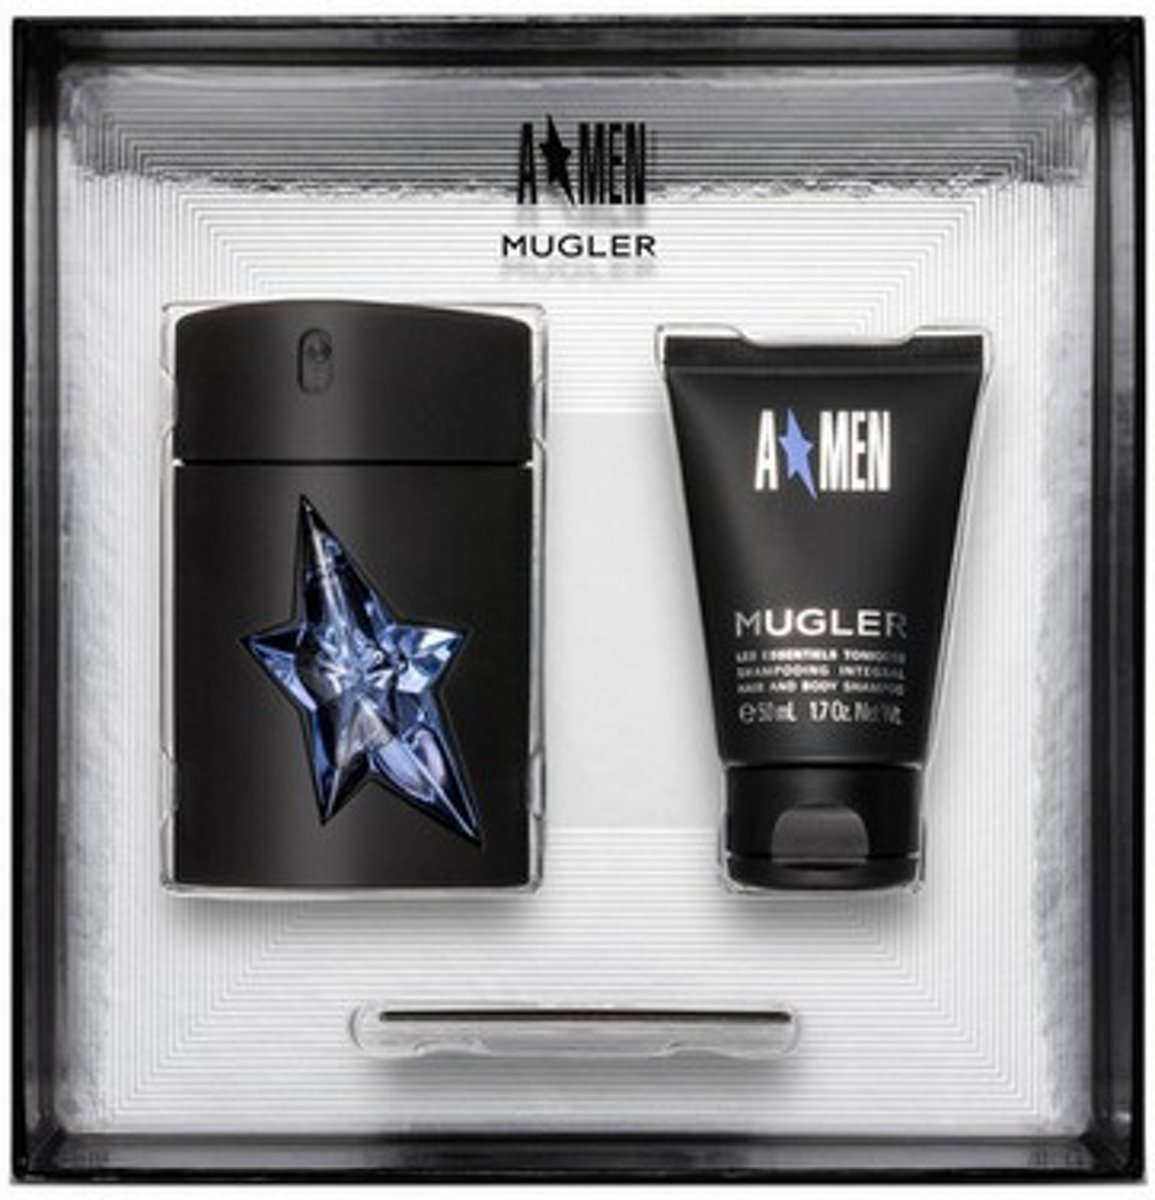 Parfumset voor Heren A*men Thierry Mugler (2 pcs)